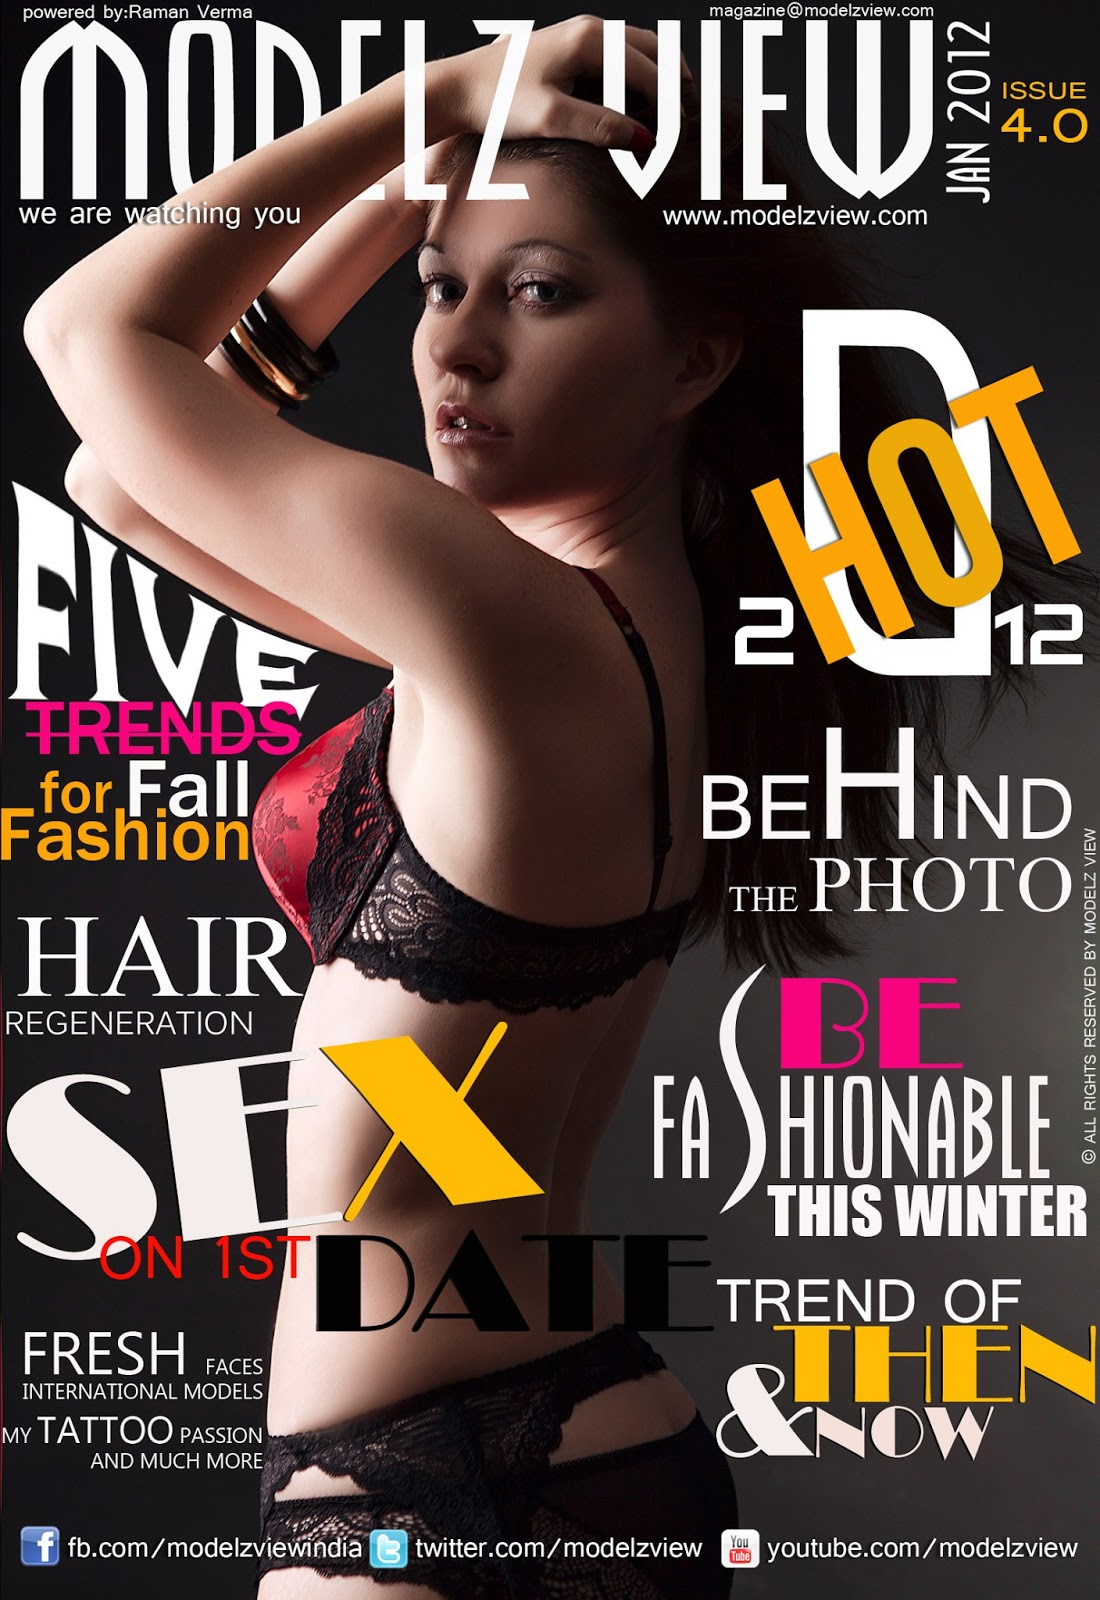 modelz_view_magazine_jan_2012